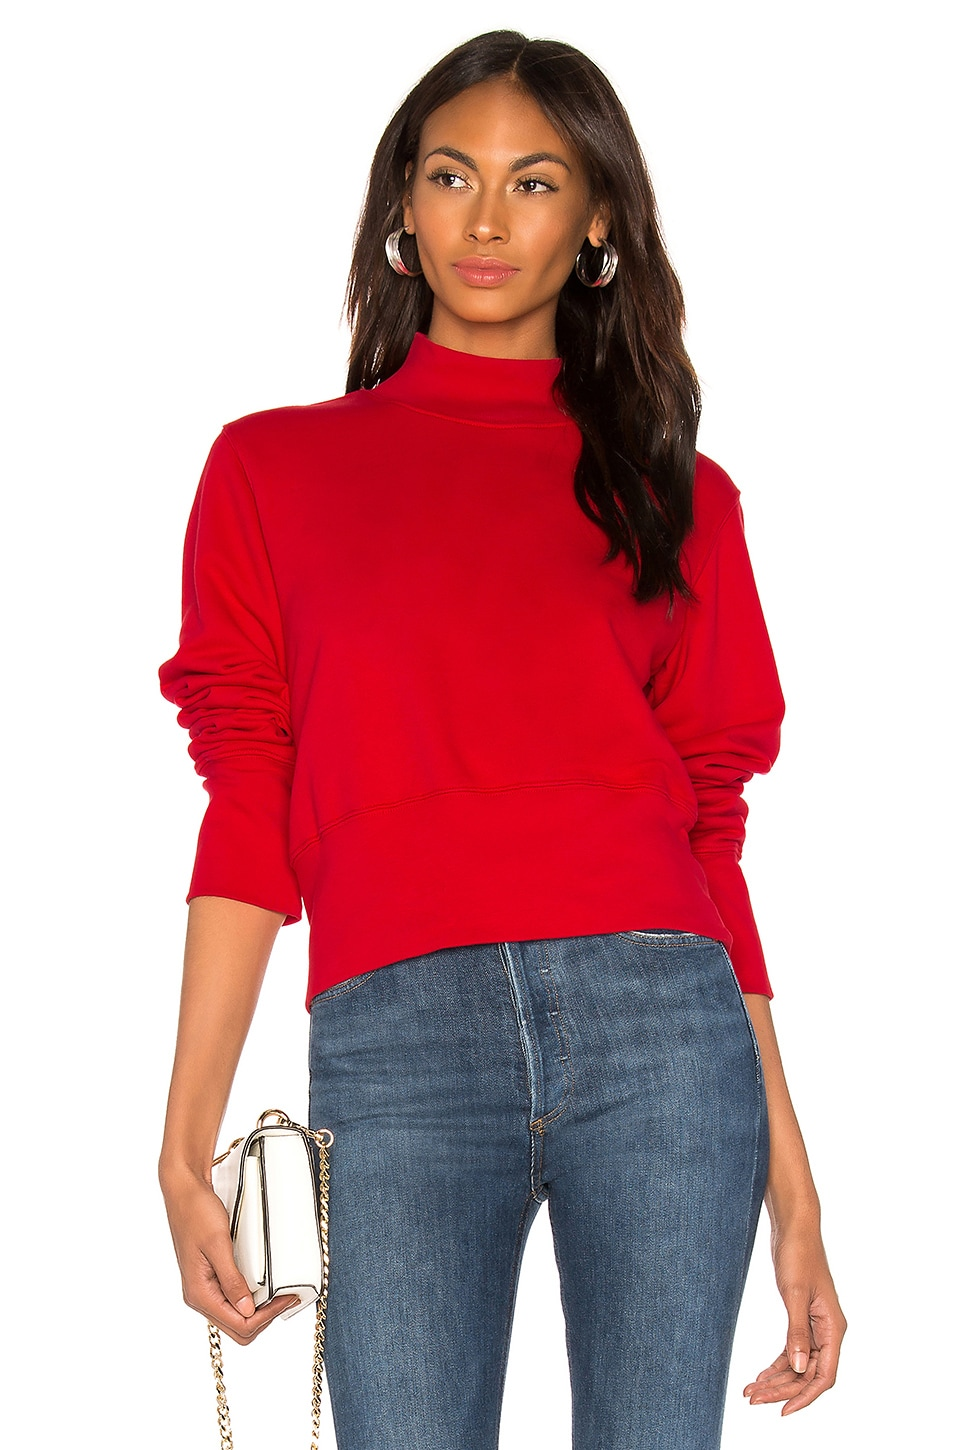 COTTON CITIZEN Milan Sweatshirt in Cherry